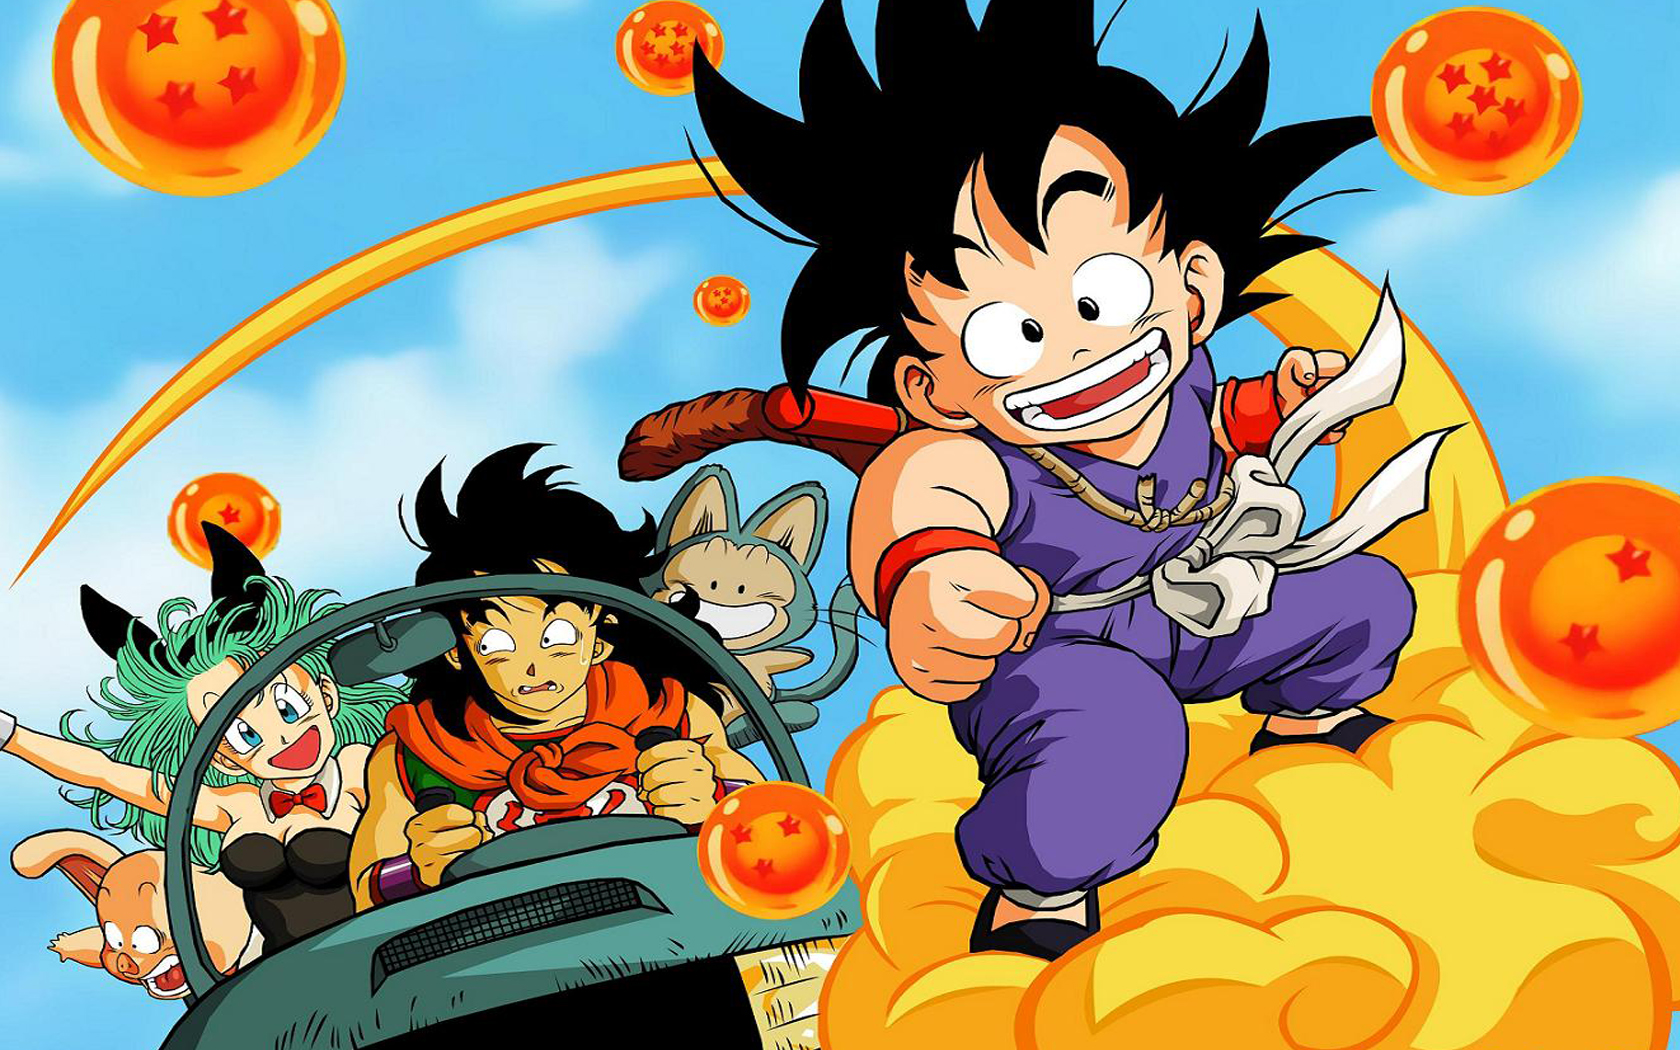 Dragon Ball Z Res: 1680x1050 / Size:1252kb. Views: 2338507